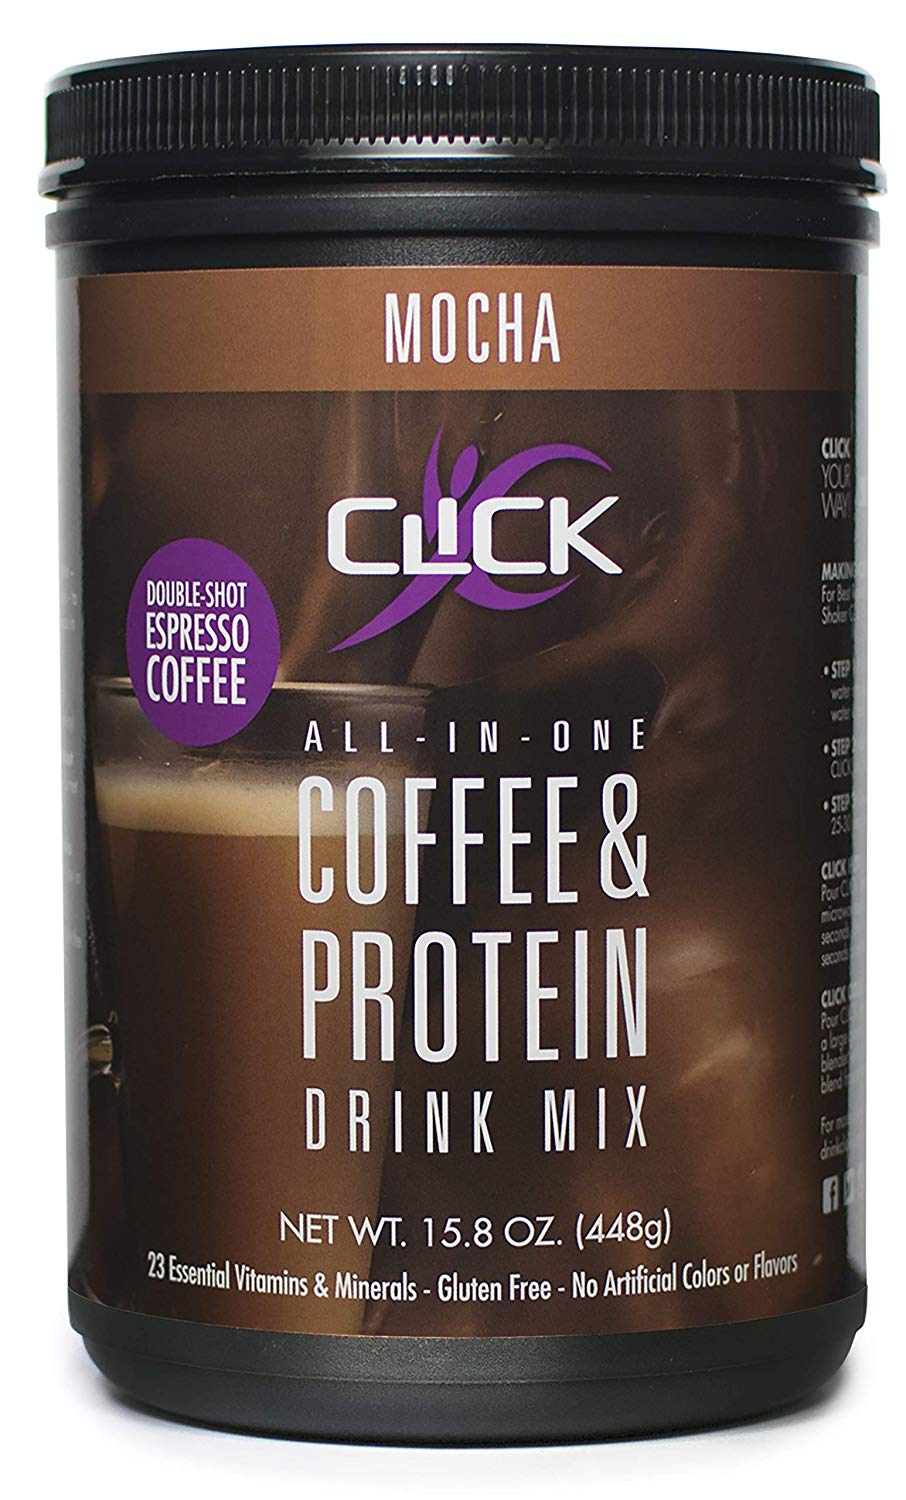 CLICK All-in-One Protein & Coffee